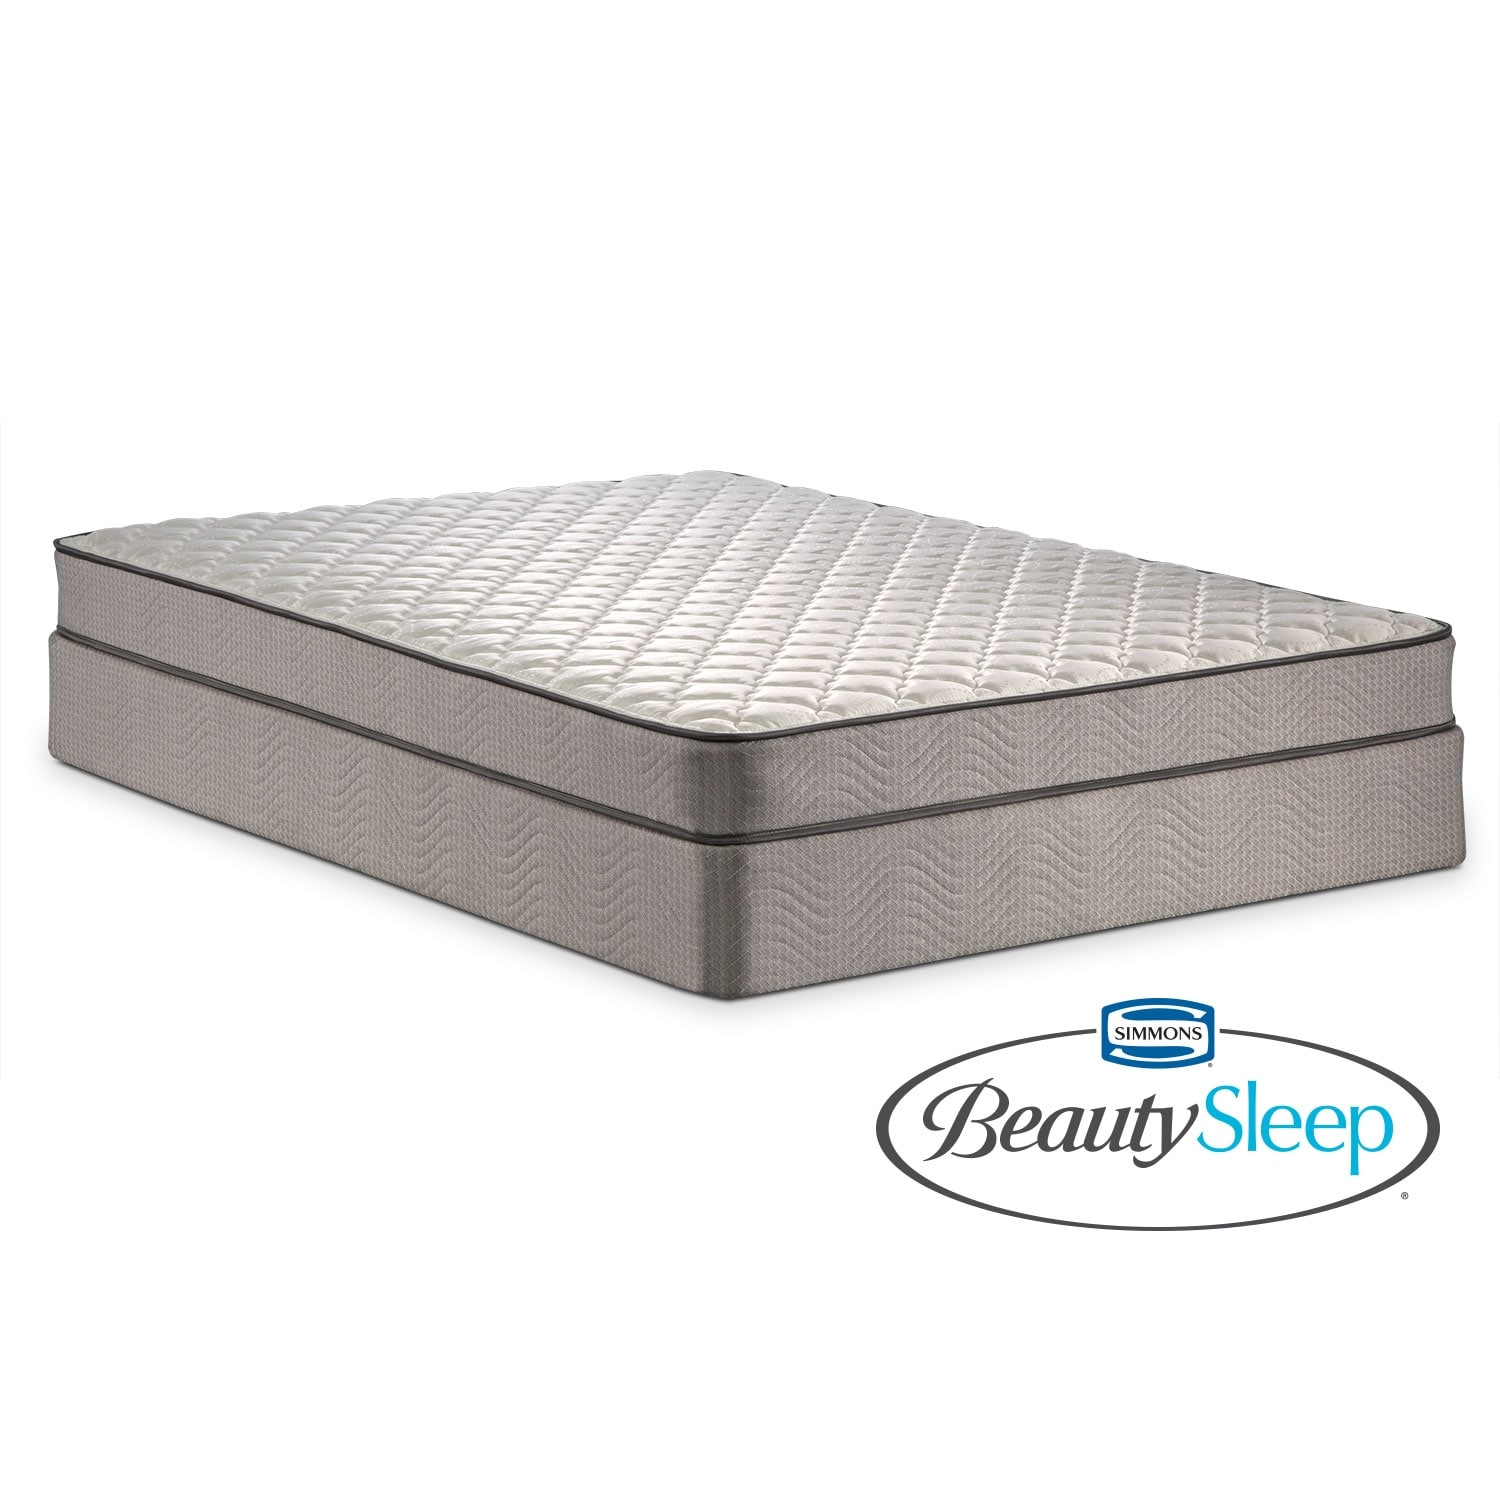 Mattresses and Bedding - Oakdale Twin Mattress/Foundation Set